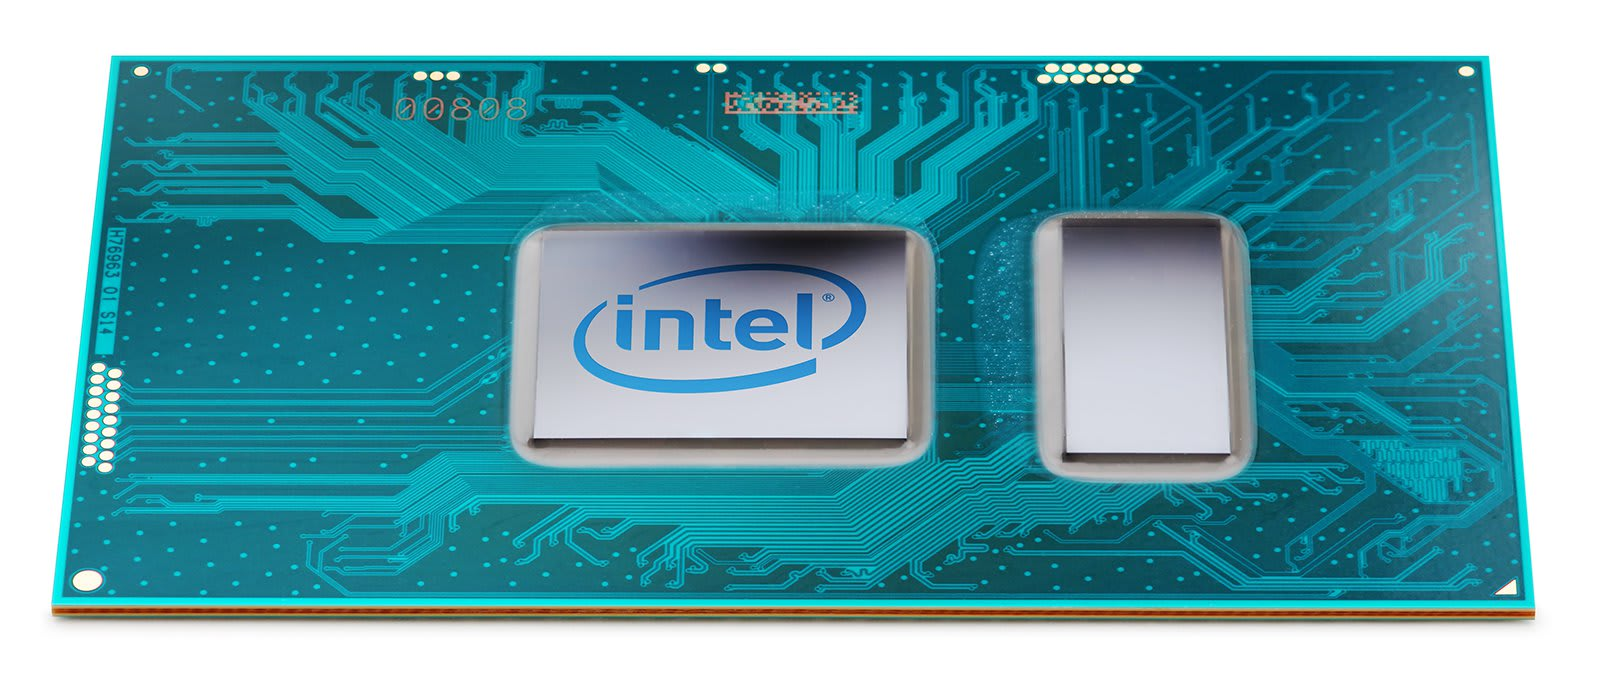 Intel's seventh-generation Core CPUs will devour 4K video